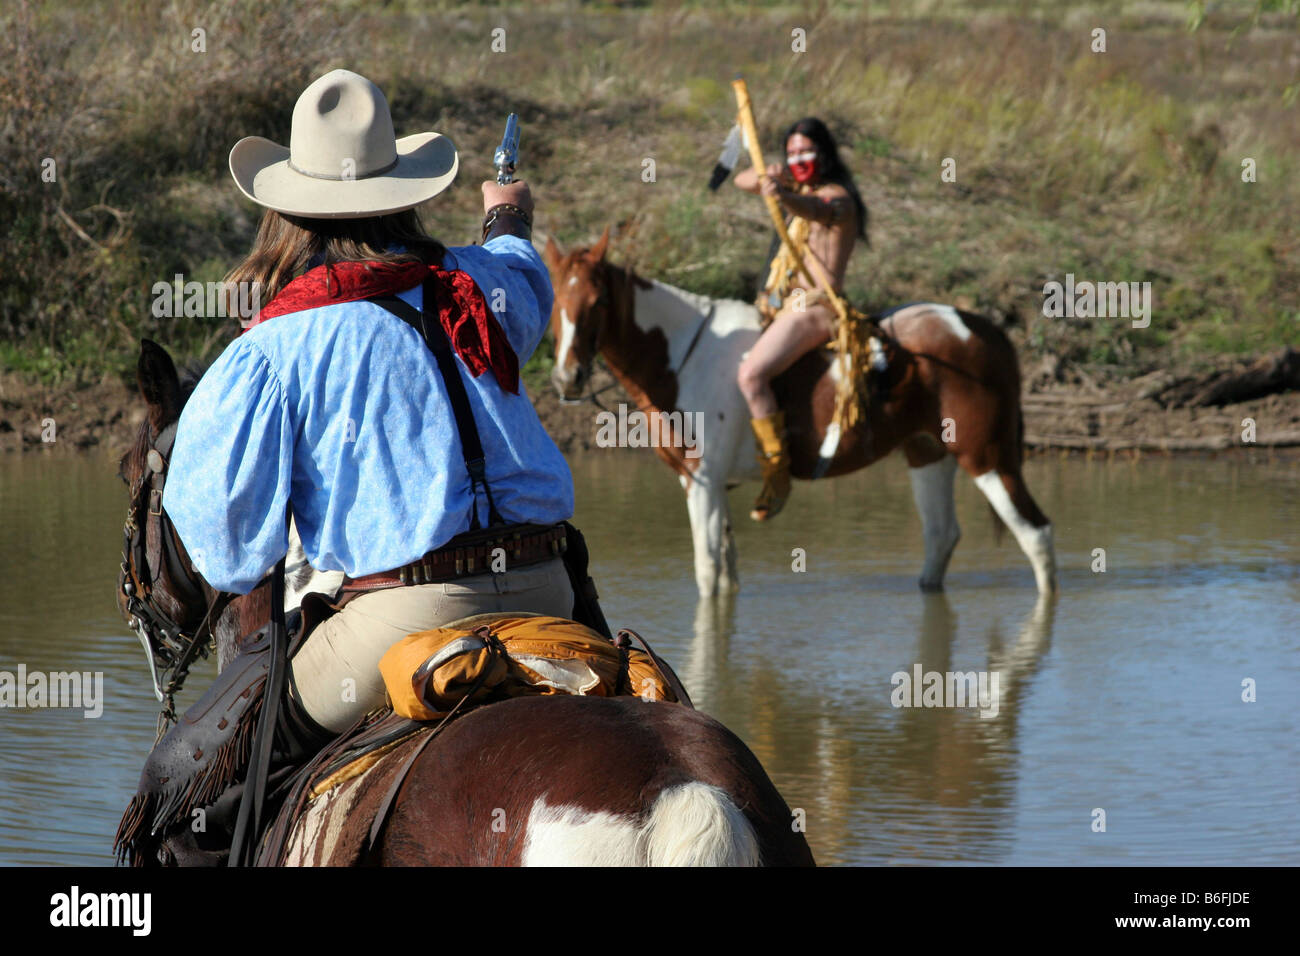 A cowboy and Native American face off across a body of water - Stock Image